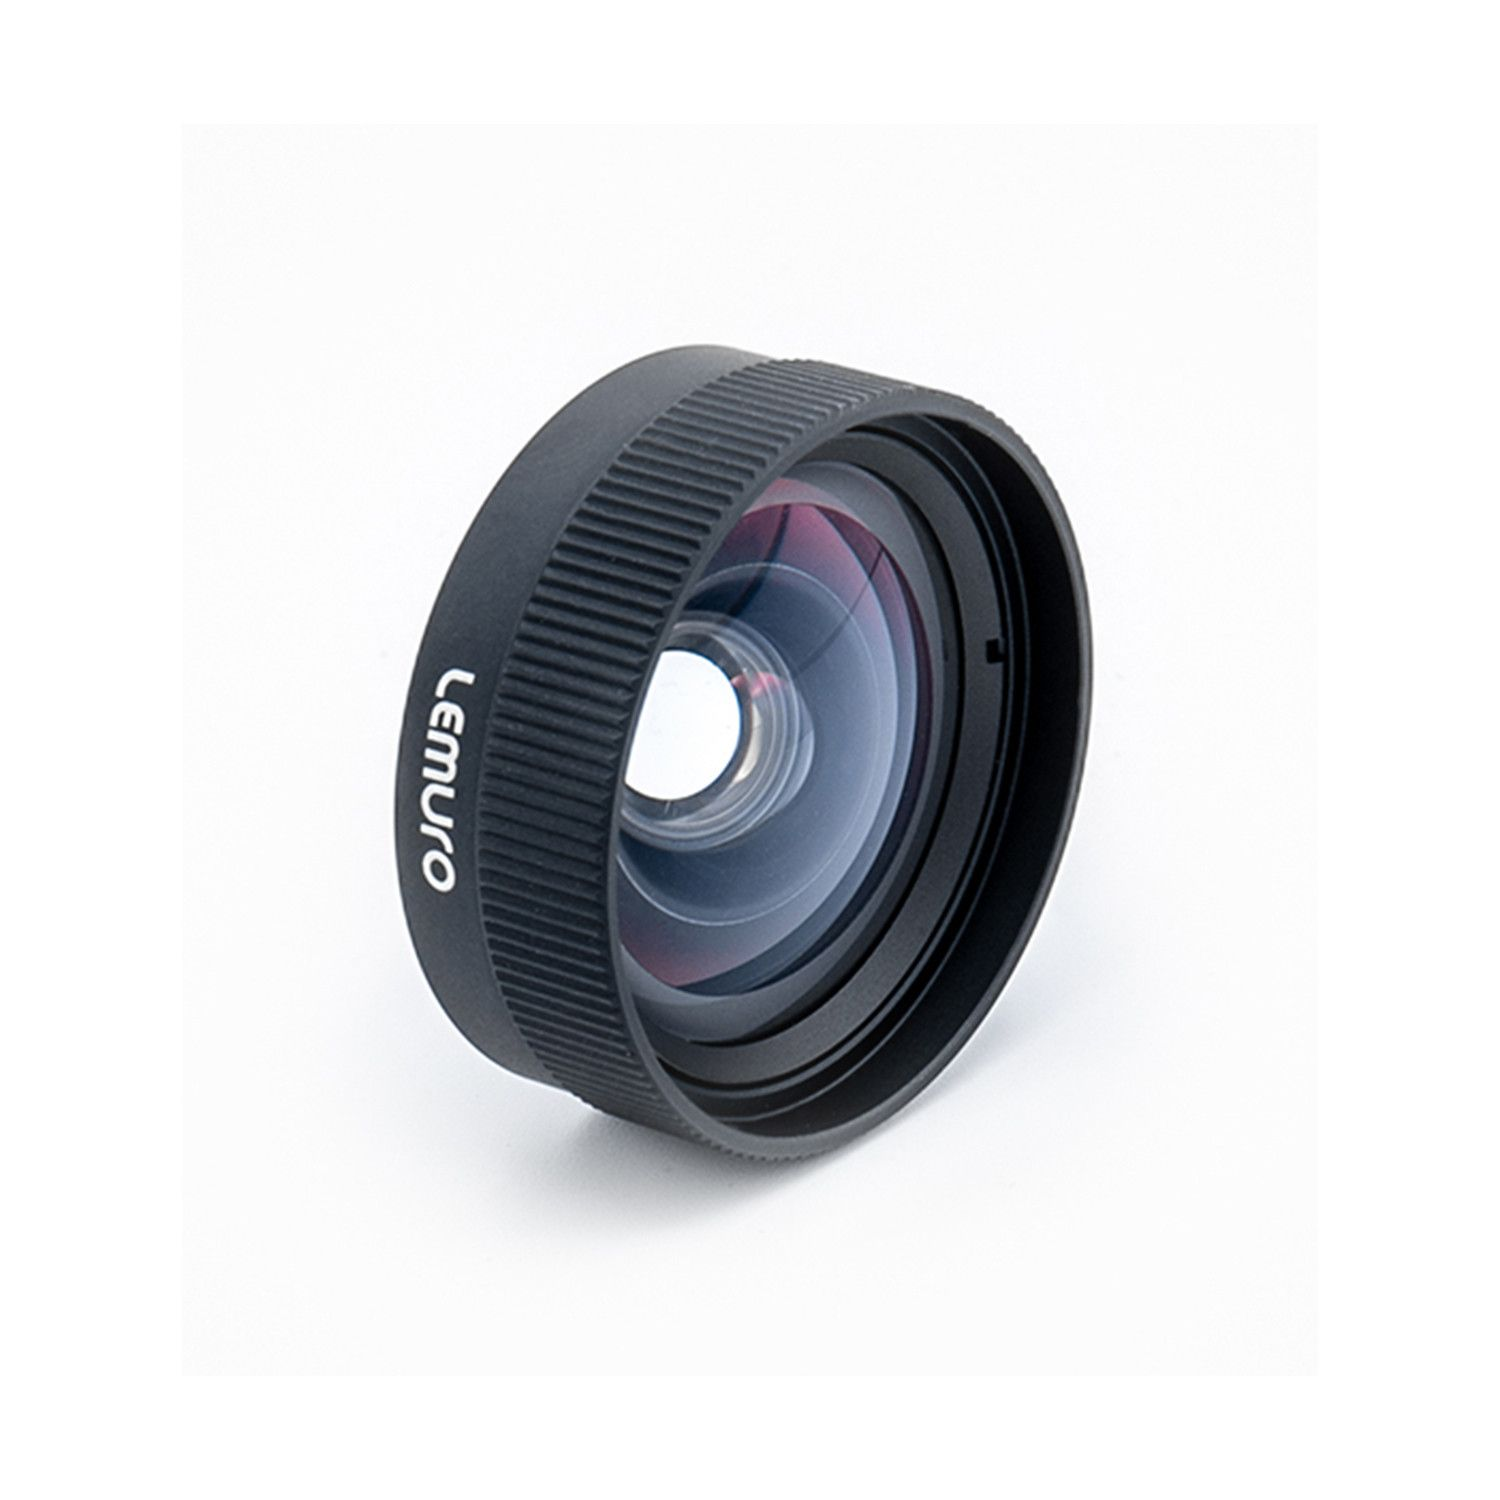 18mm Wide Lens Wide Angle Lens Lens Iphone Camera